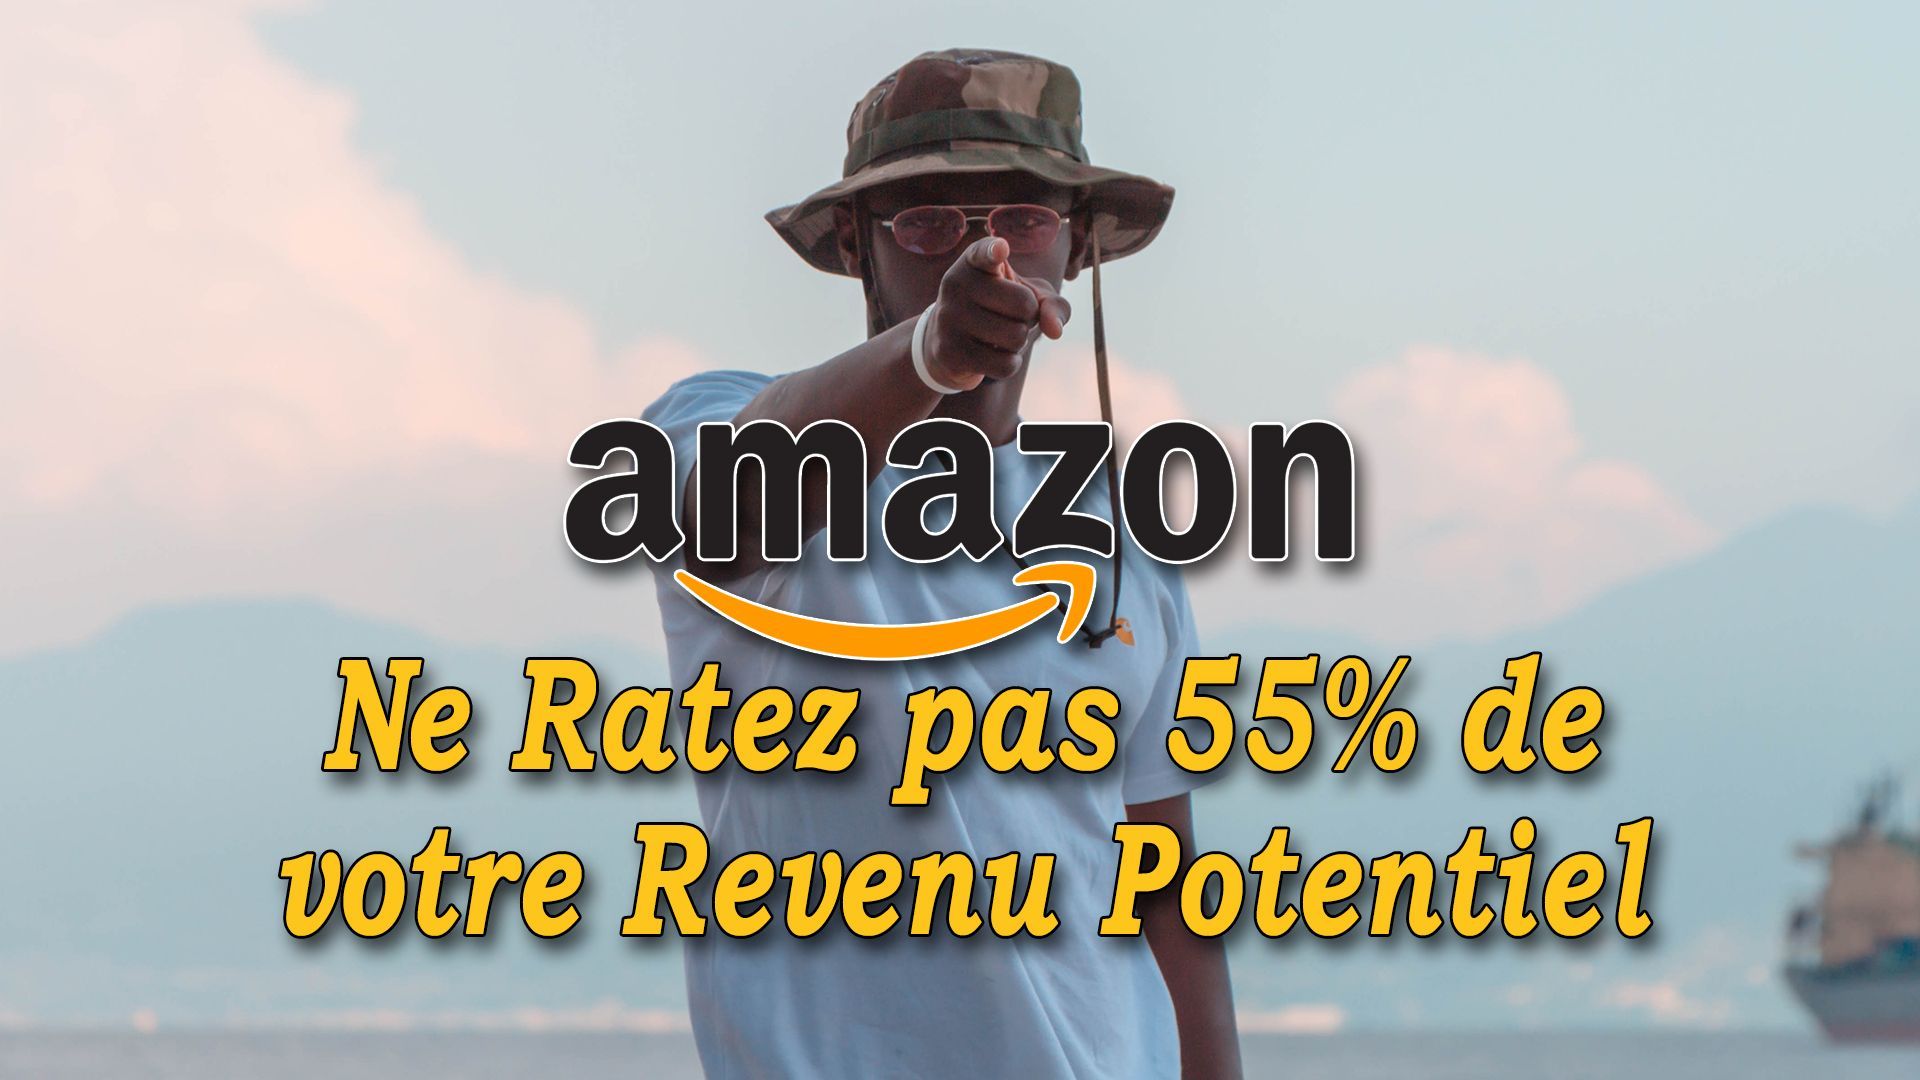 Amazon : ne ratez pas 55% de votre revenu potentiel #GrowthHacking #WebMarketing #FormationGrowthHacking #CentreDeFormationFrance #TunnelAARRR #AARRR #SocialMedia #CommunityManagement #SEO #amazon #amazonads